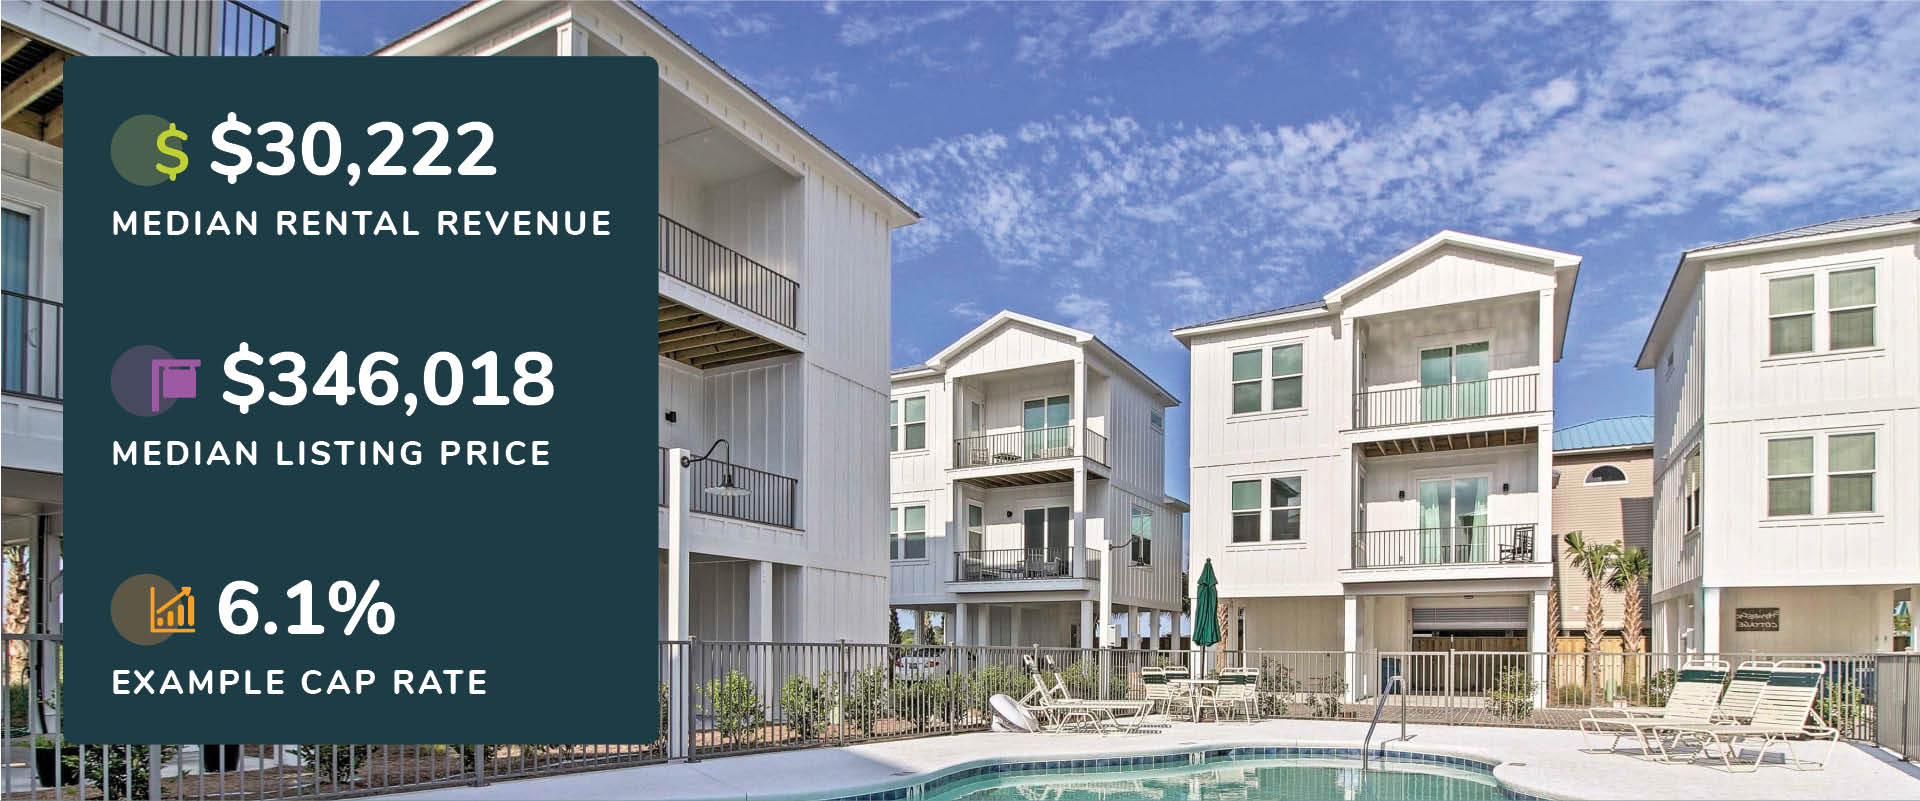 Graphic showing Gulf Shores, Alabama median rental revenue, listing price, and cap rate with a picture of a condo complex with pool.